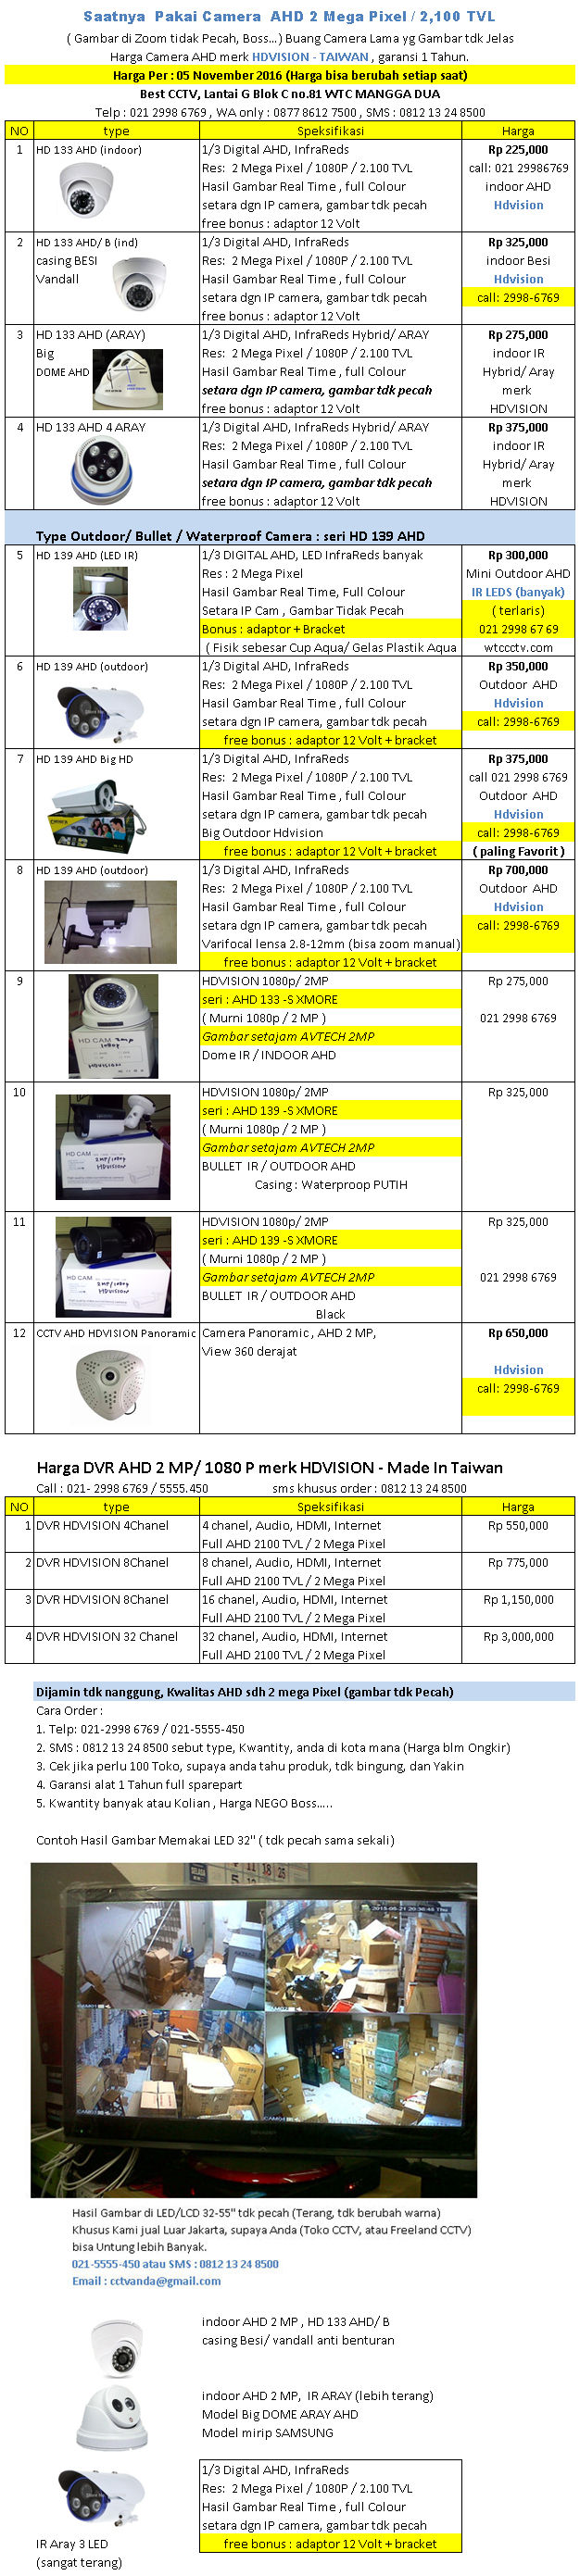 Harga Camera CCTV Merk AHD Per 05 November 2016 - Avtech Camera